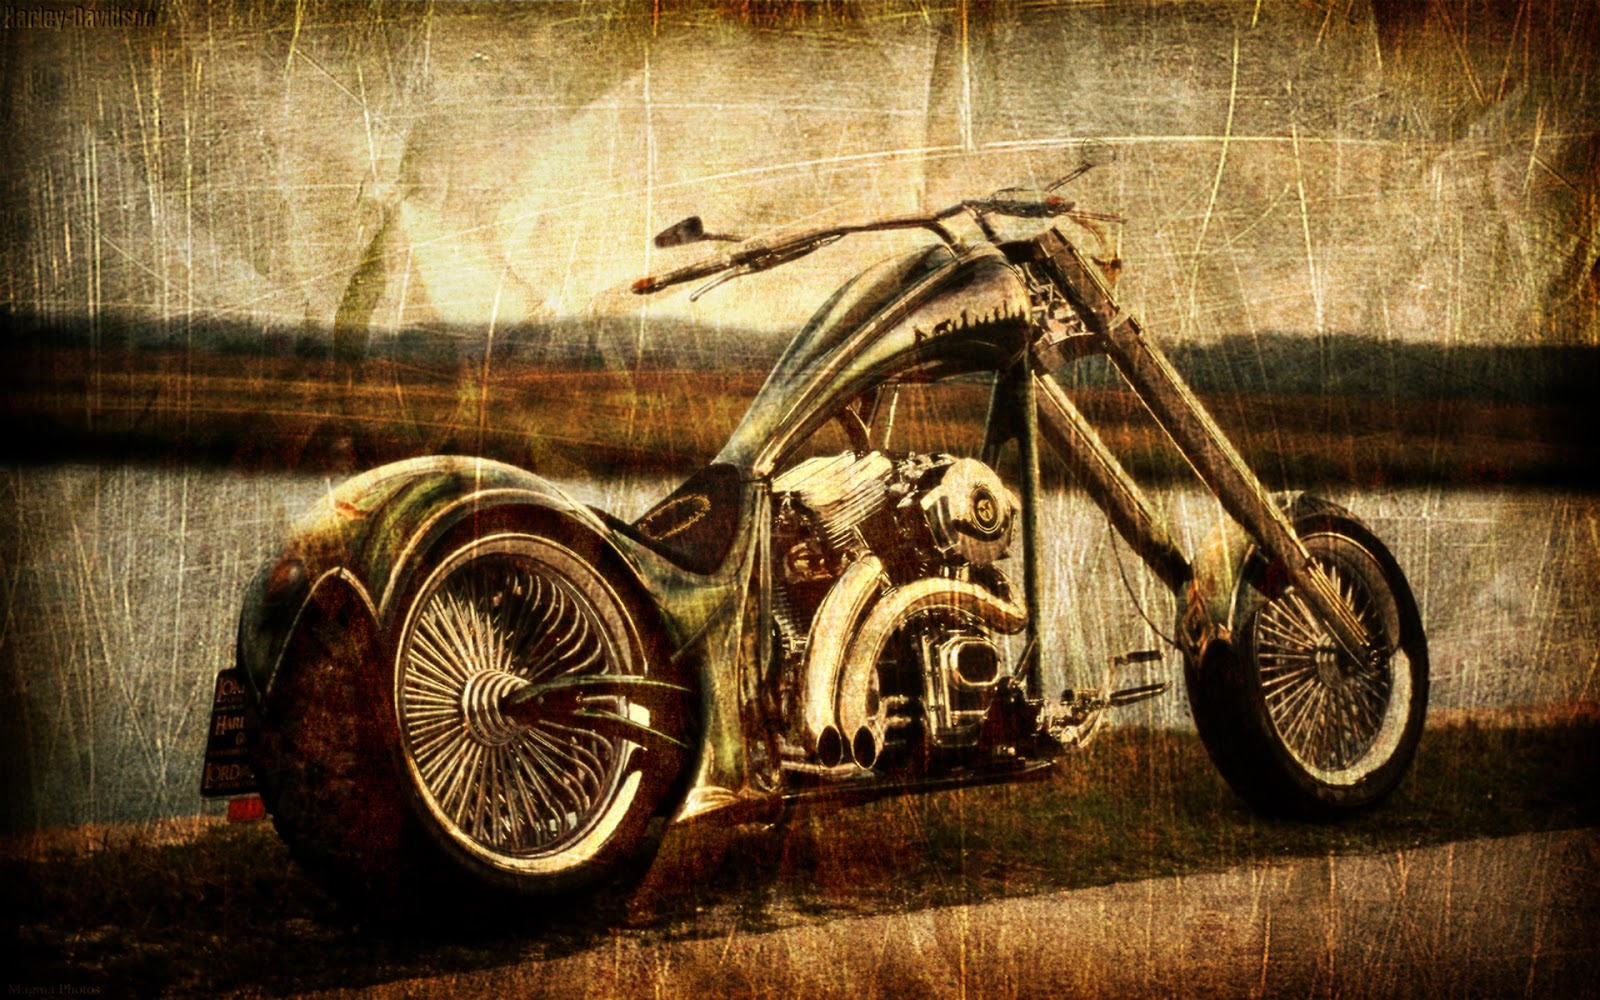 chopper motorcycles wallpaper - photo #15